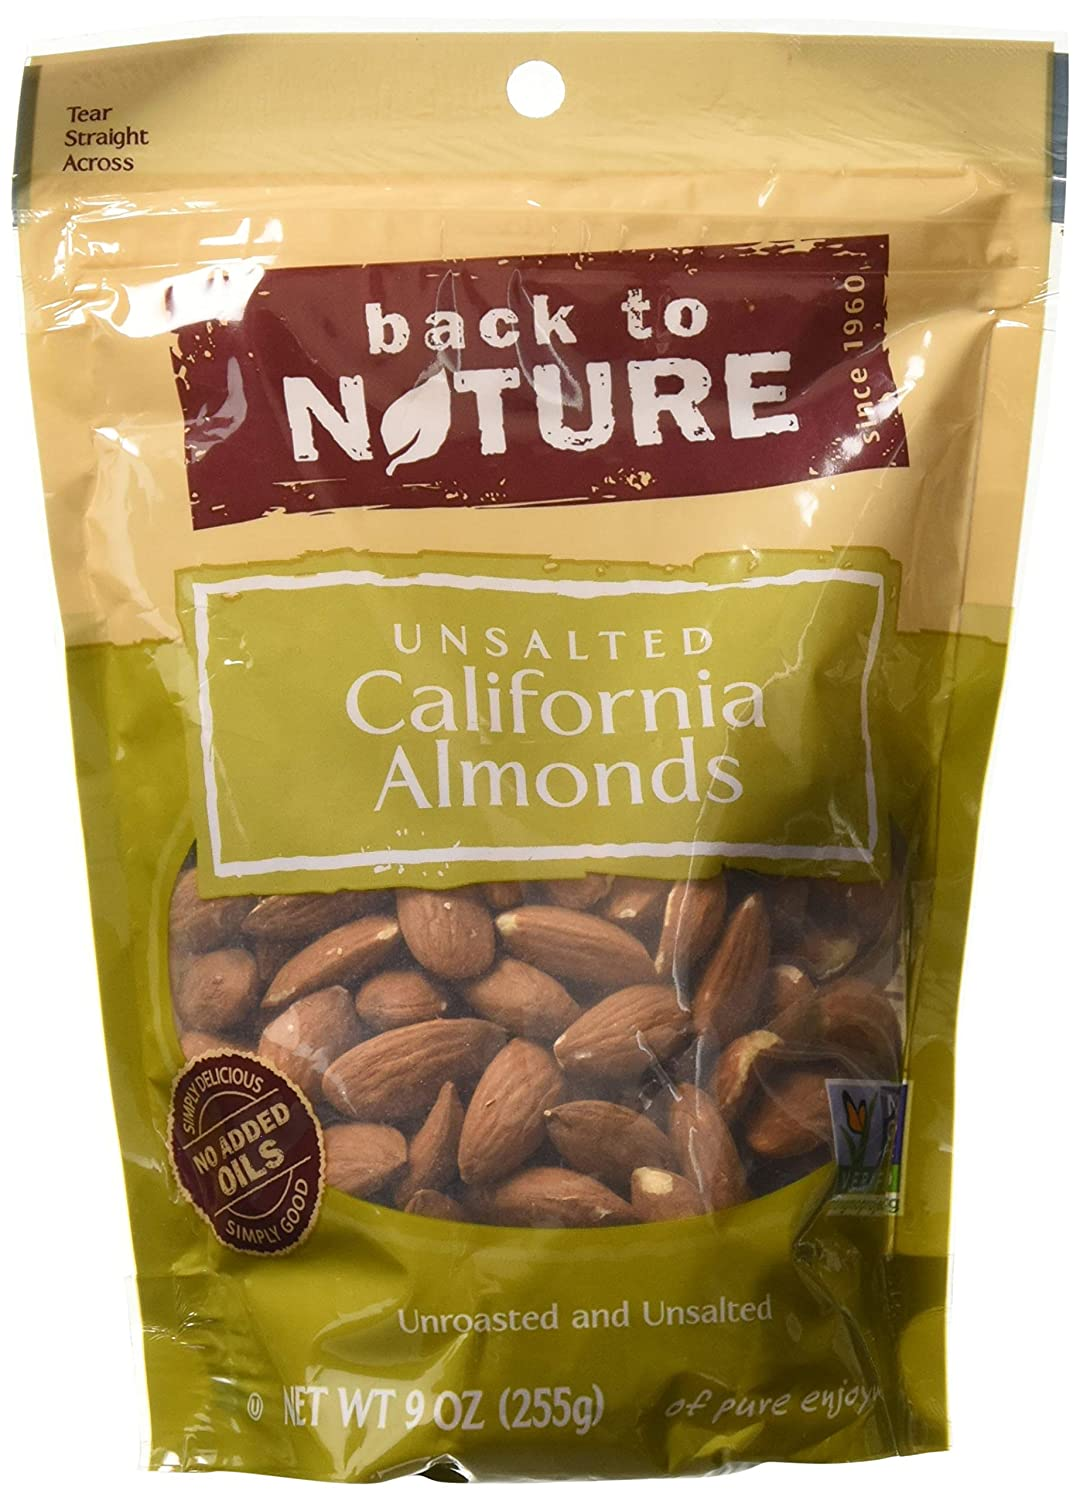 Back to Nature California Almonds Unroasted and Unsalted, 9 Ounce